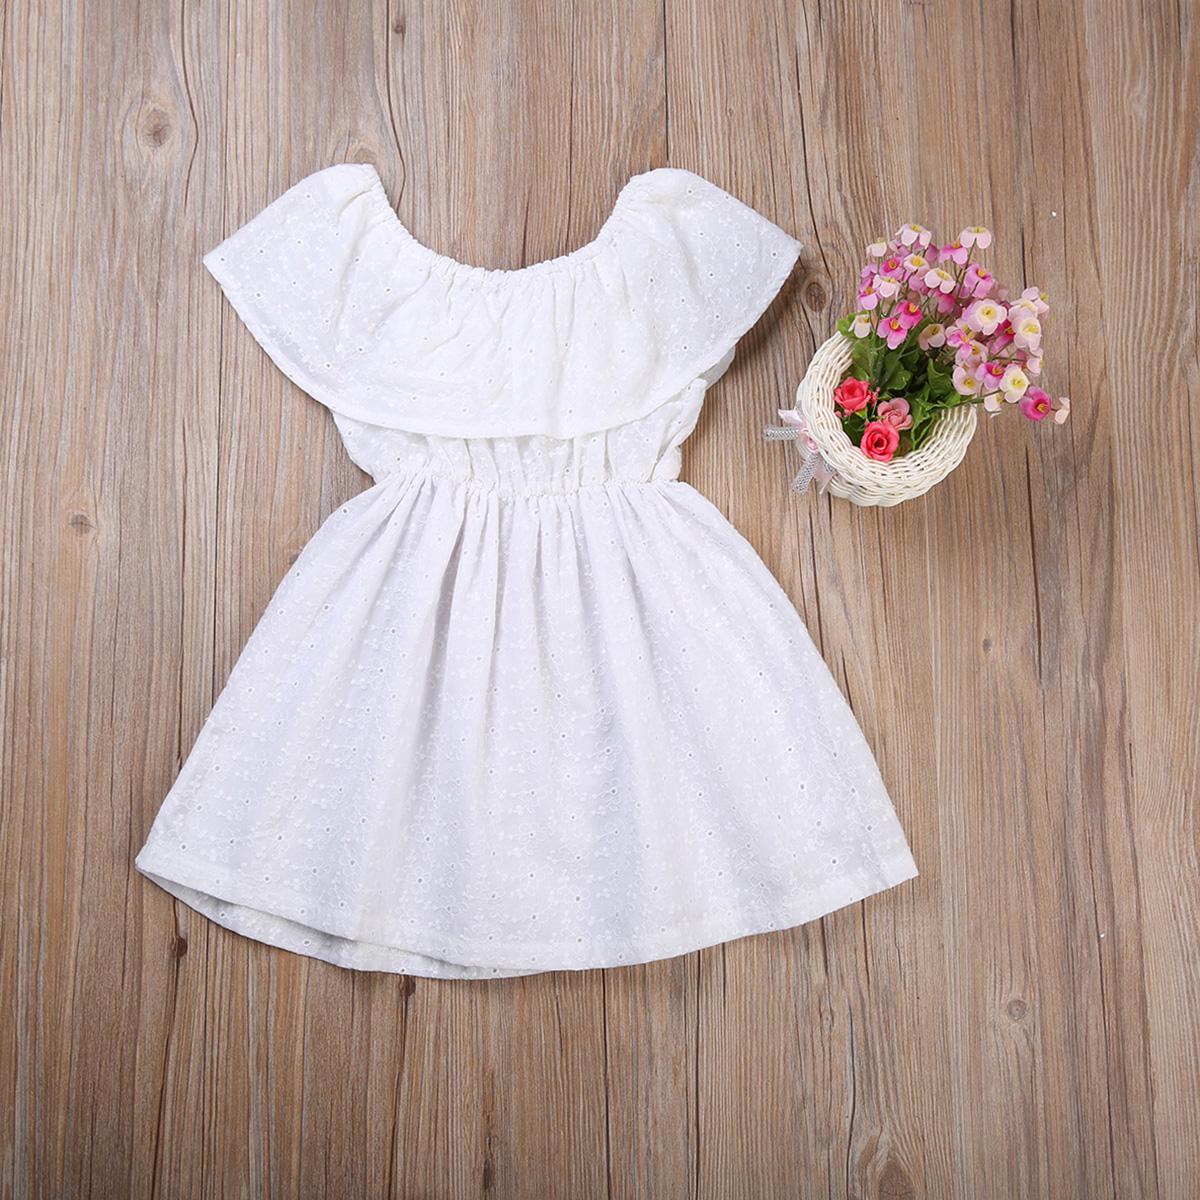 Toddler Kids Baby Girls Summer Princess Dress Party Pageant Lace Dresses Clothes